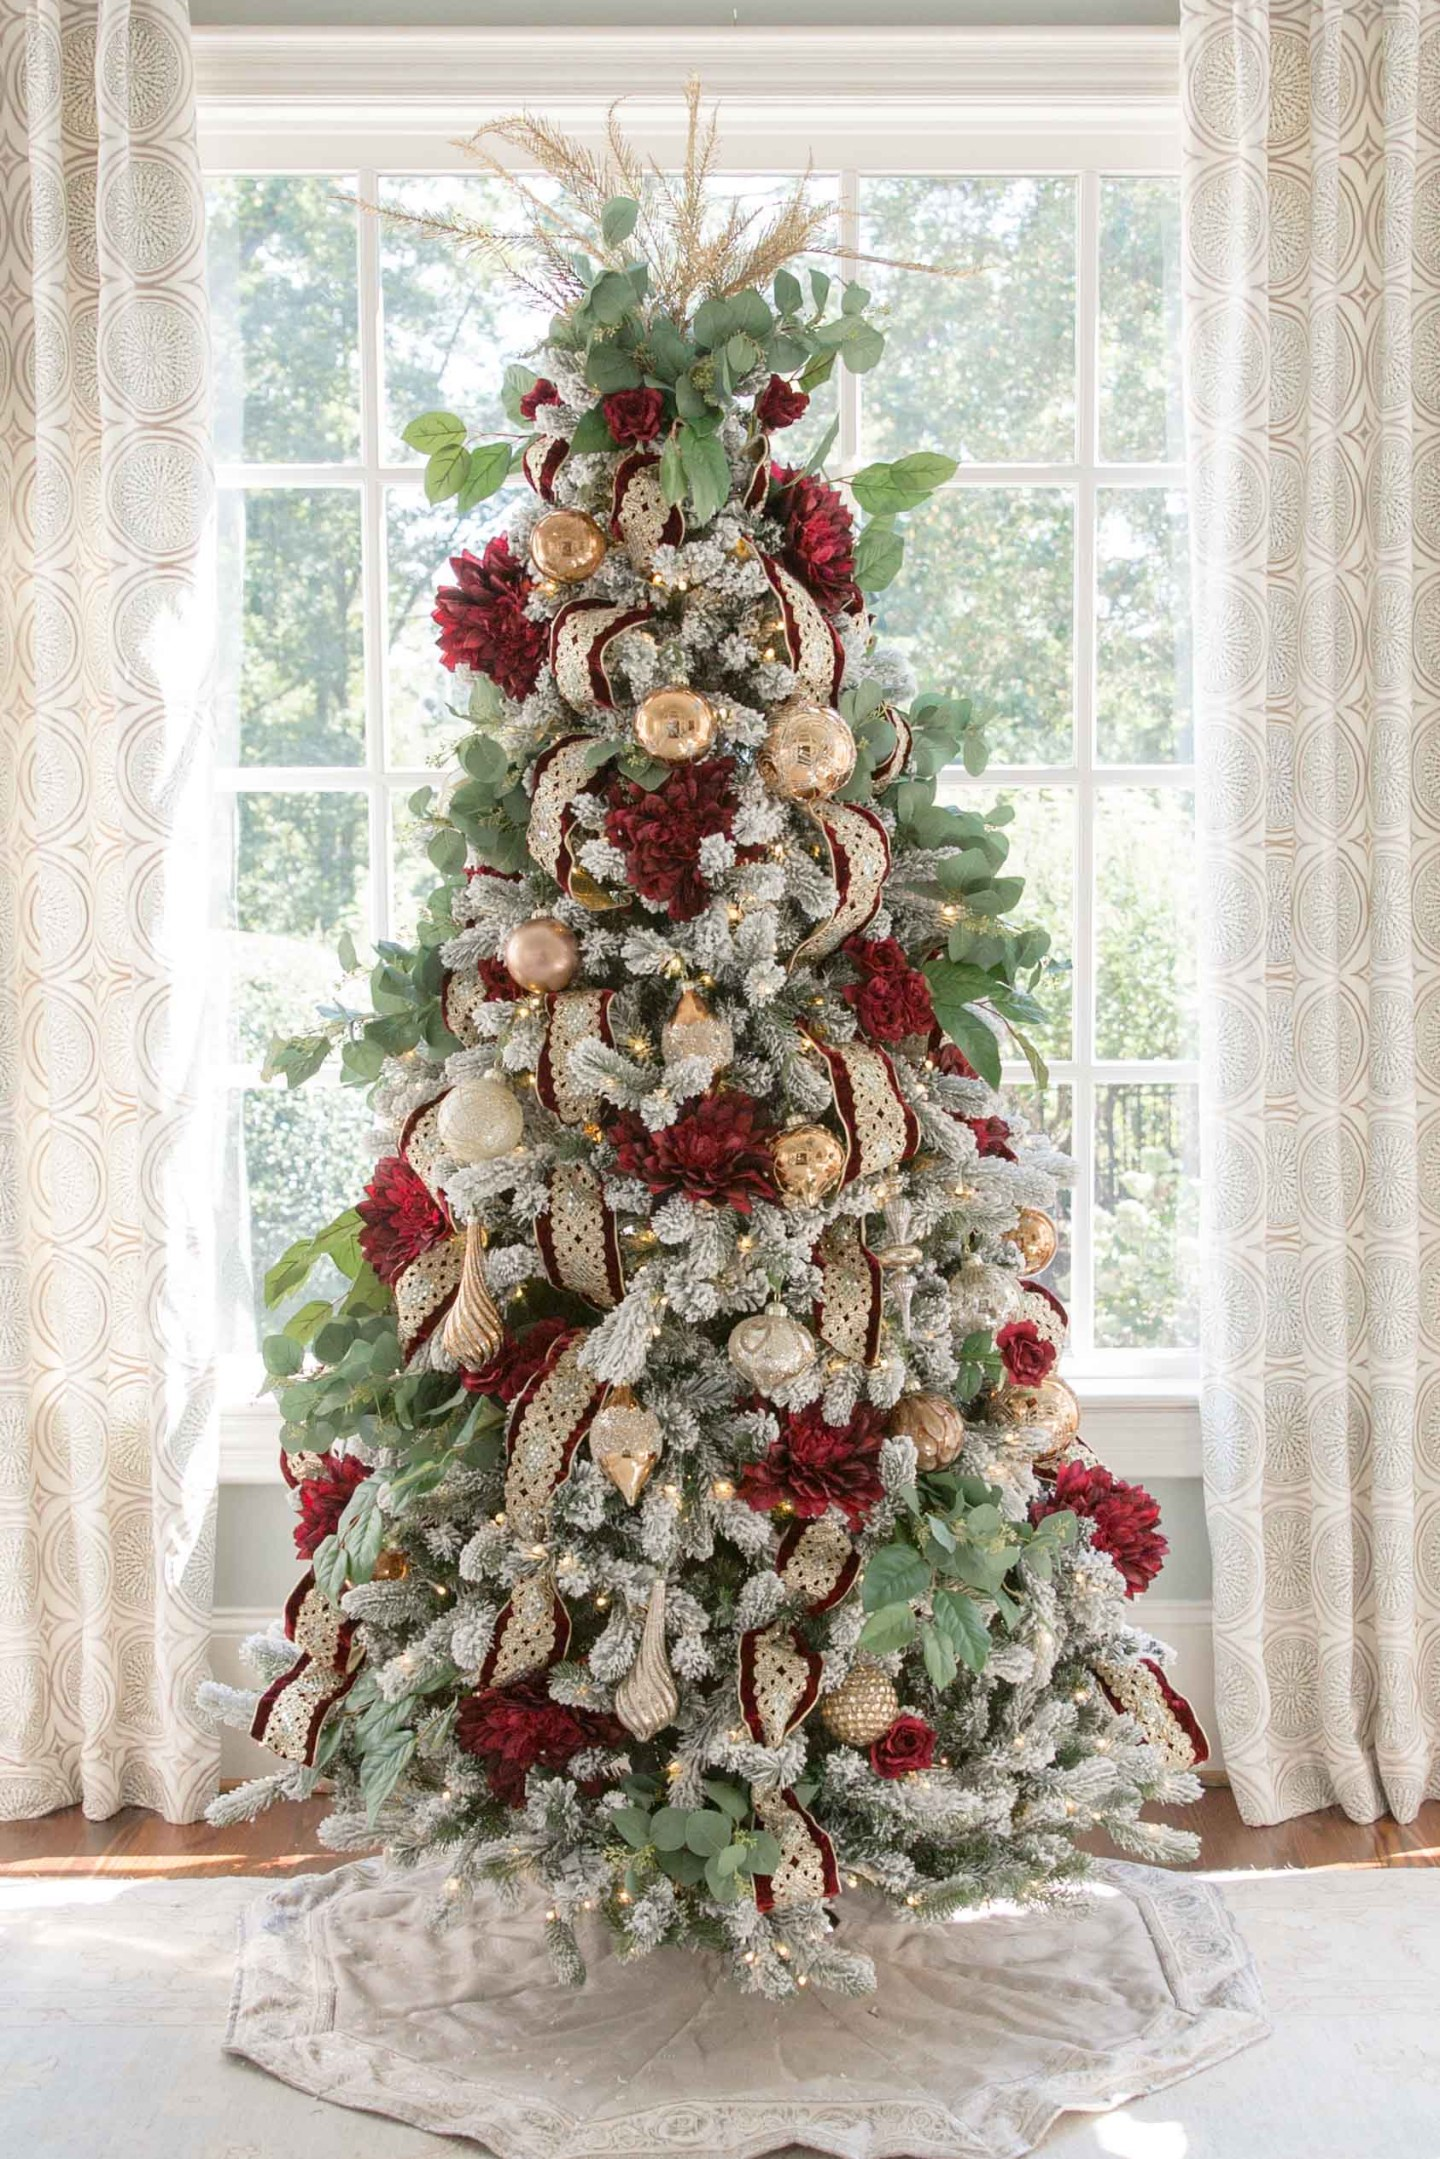 Red and Gold Christmas Tree. Intricate and ornate gold wired ribbon, dark red dahlias and deep red roses decorate this flocked tree in traditional colors. See two ways to decorate a flocked Christmas tree. More how to design a traditional tree posts coming soon!